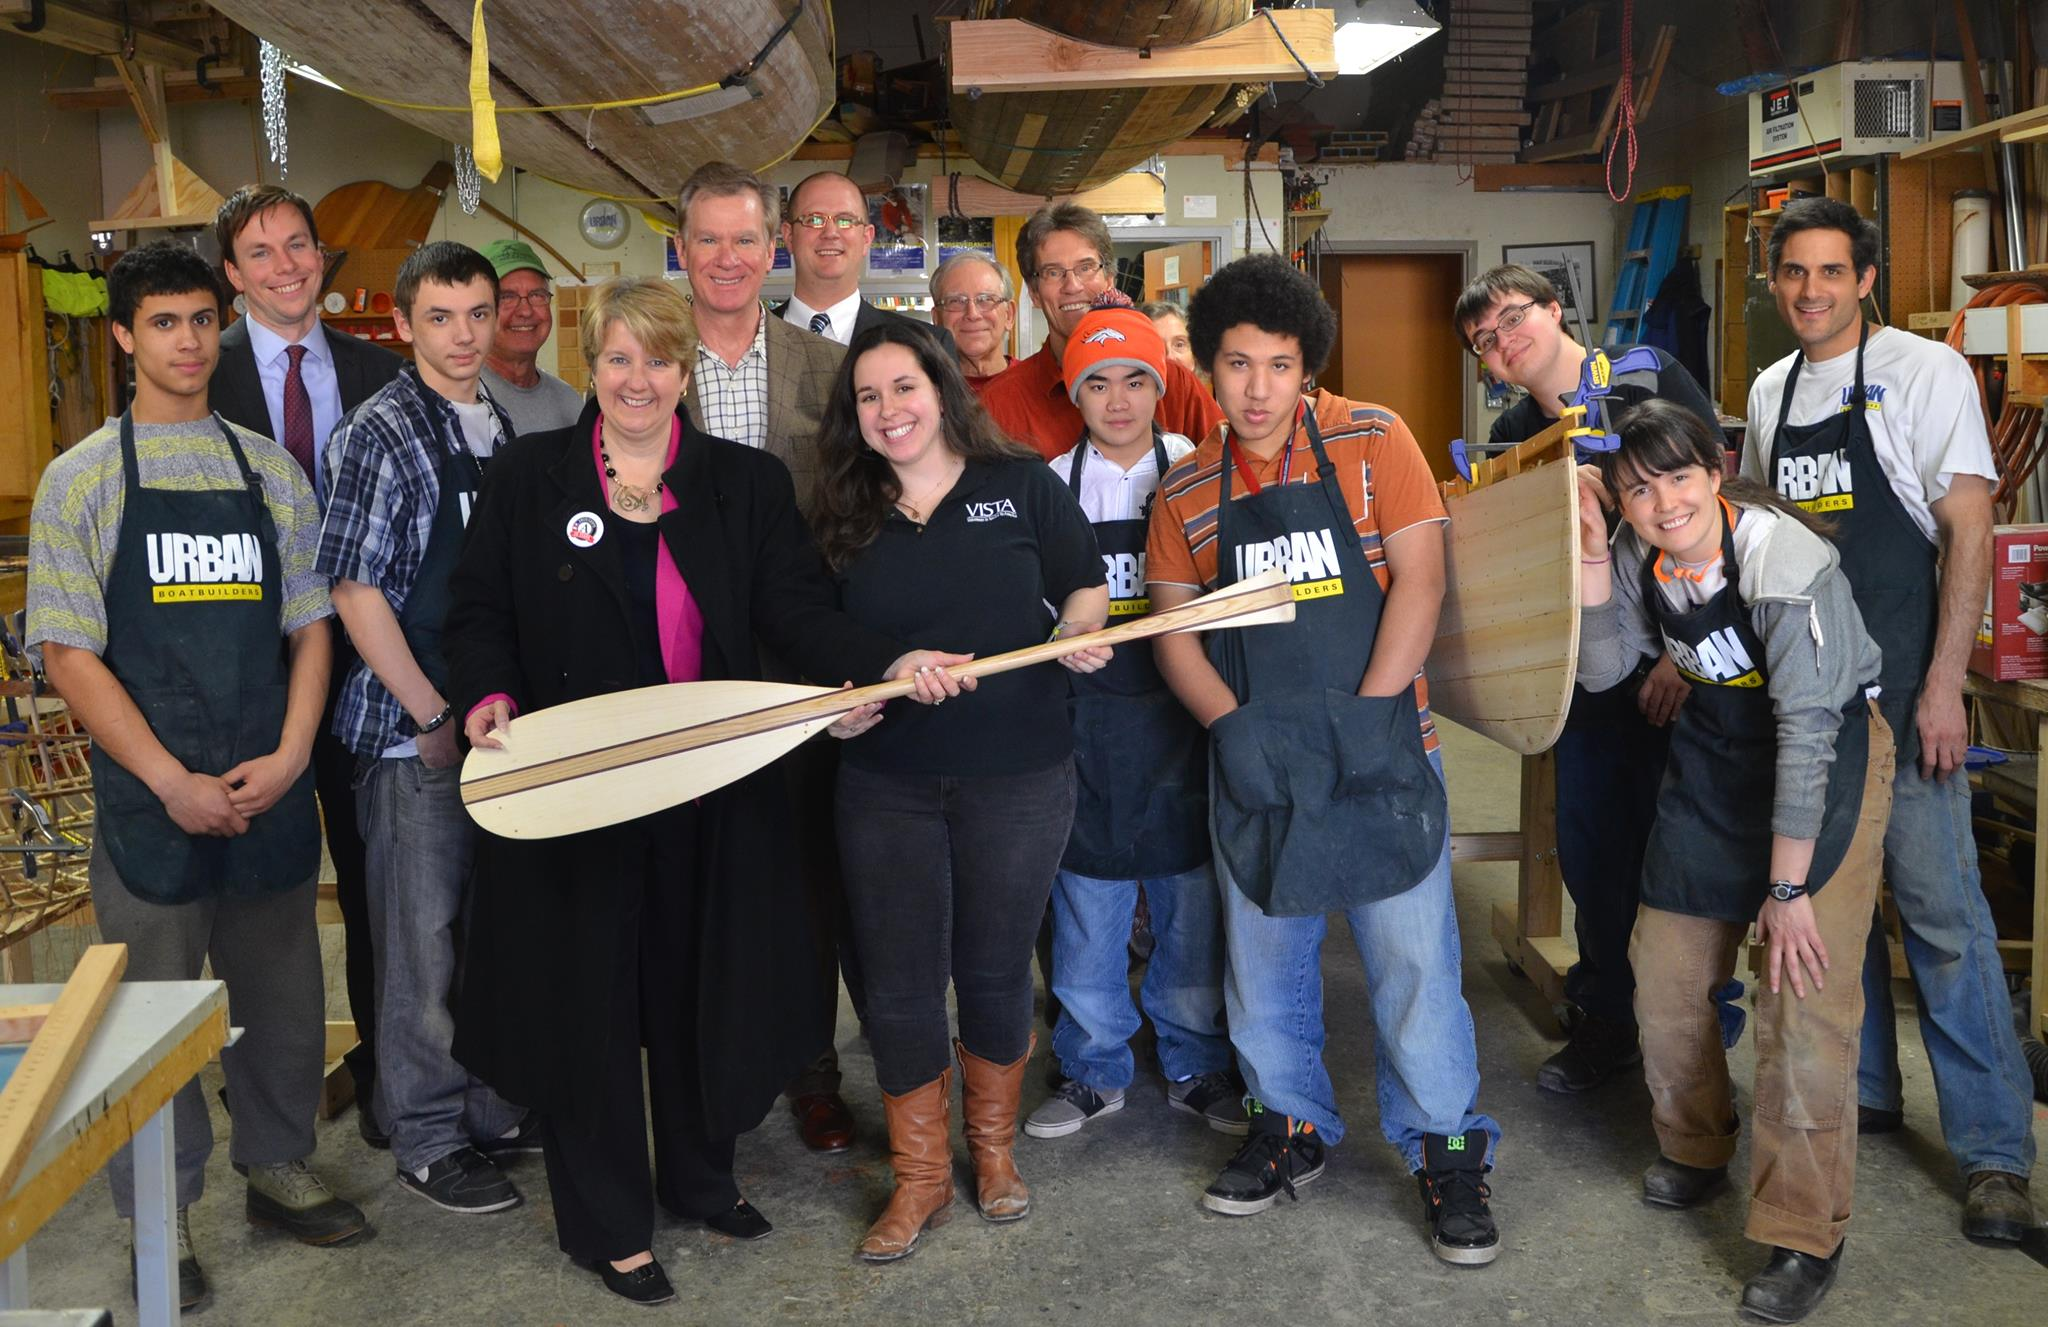 Because of the exemplary work done by our AmeriCorps VISTA Sara, Mayor Chris Coleman andCEO for the Corporation of National and Community Service Wendy Spencer visited the Urban Boatbuilders shop! After a shop tour by Sara and the Apprentices, everyone sat down to discuss all the great things happening at Urban Boatbuilders. Wendy Spencer was so excited about the work we are doing that she mentioned Urban Boatbuilders in a speech she gave at the Presidio Institute in San Francisco. A successful visit!